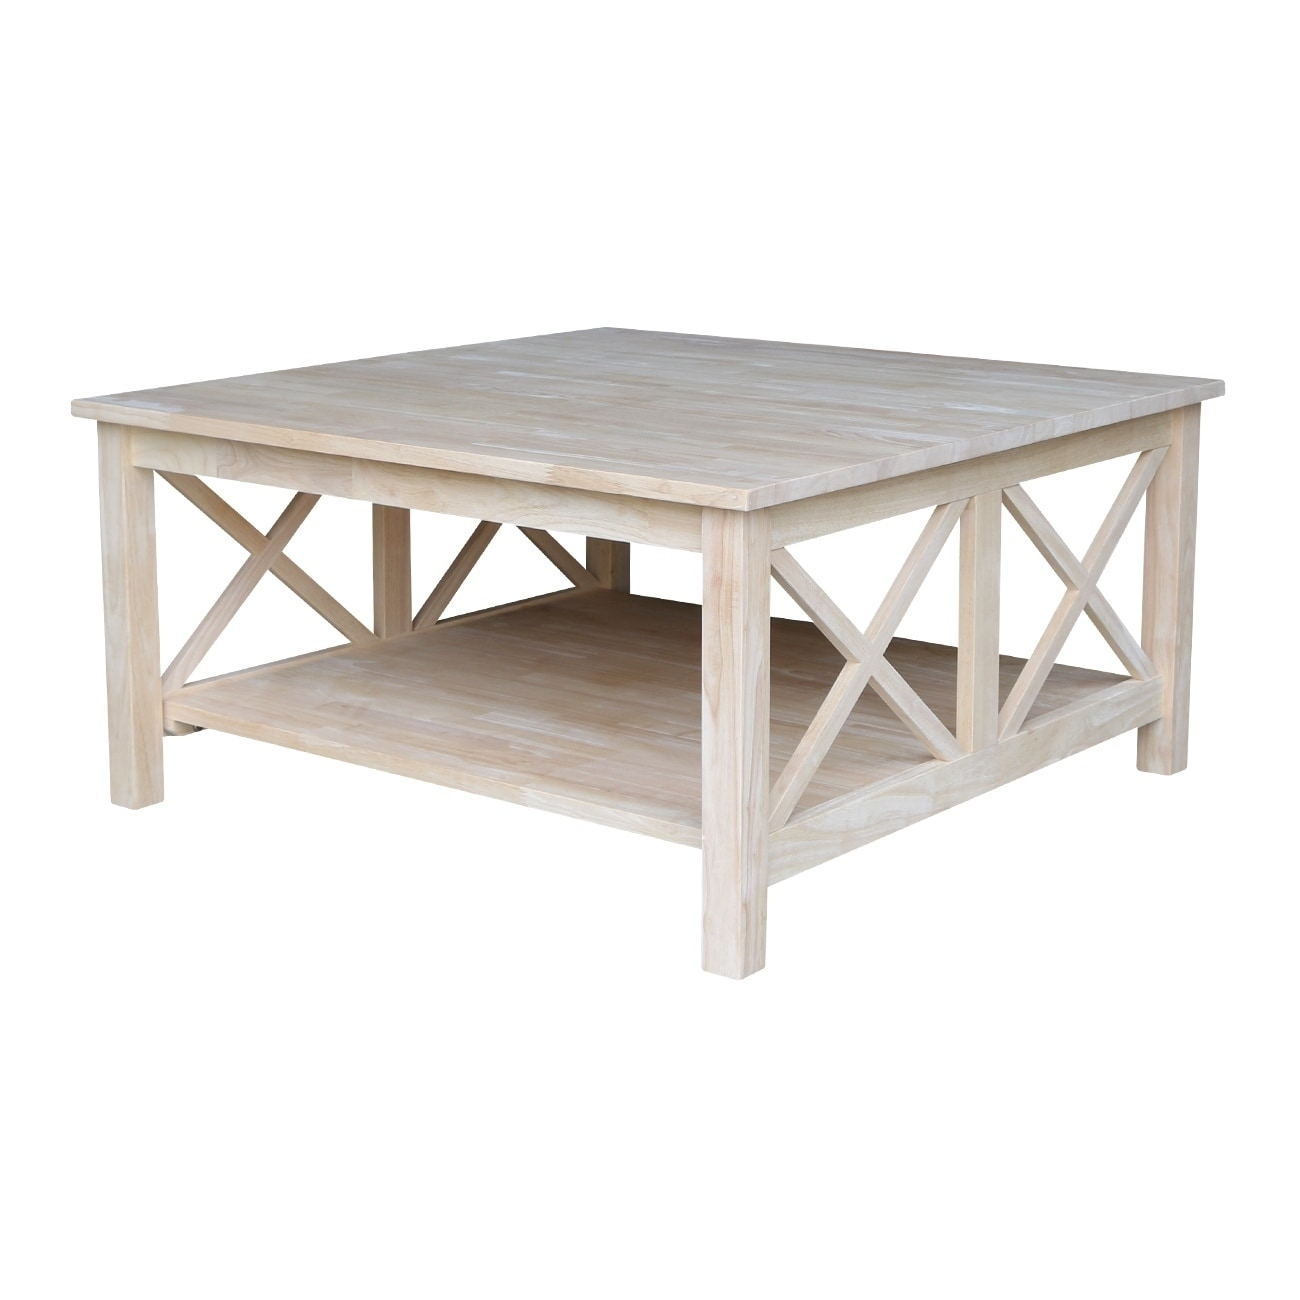 Buy Solid Wood Square Coffee Tables Online At Overstock Our